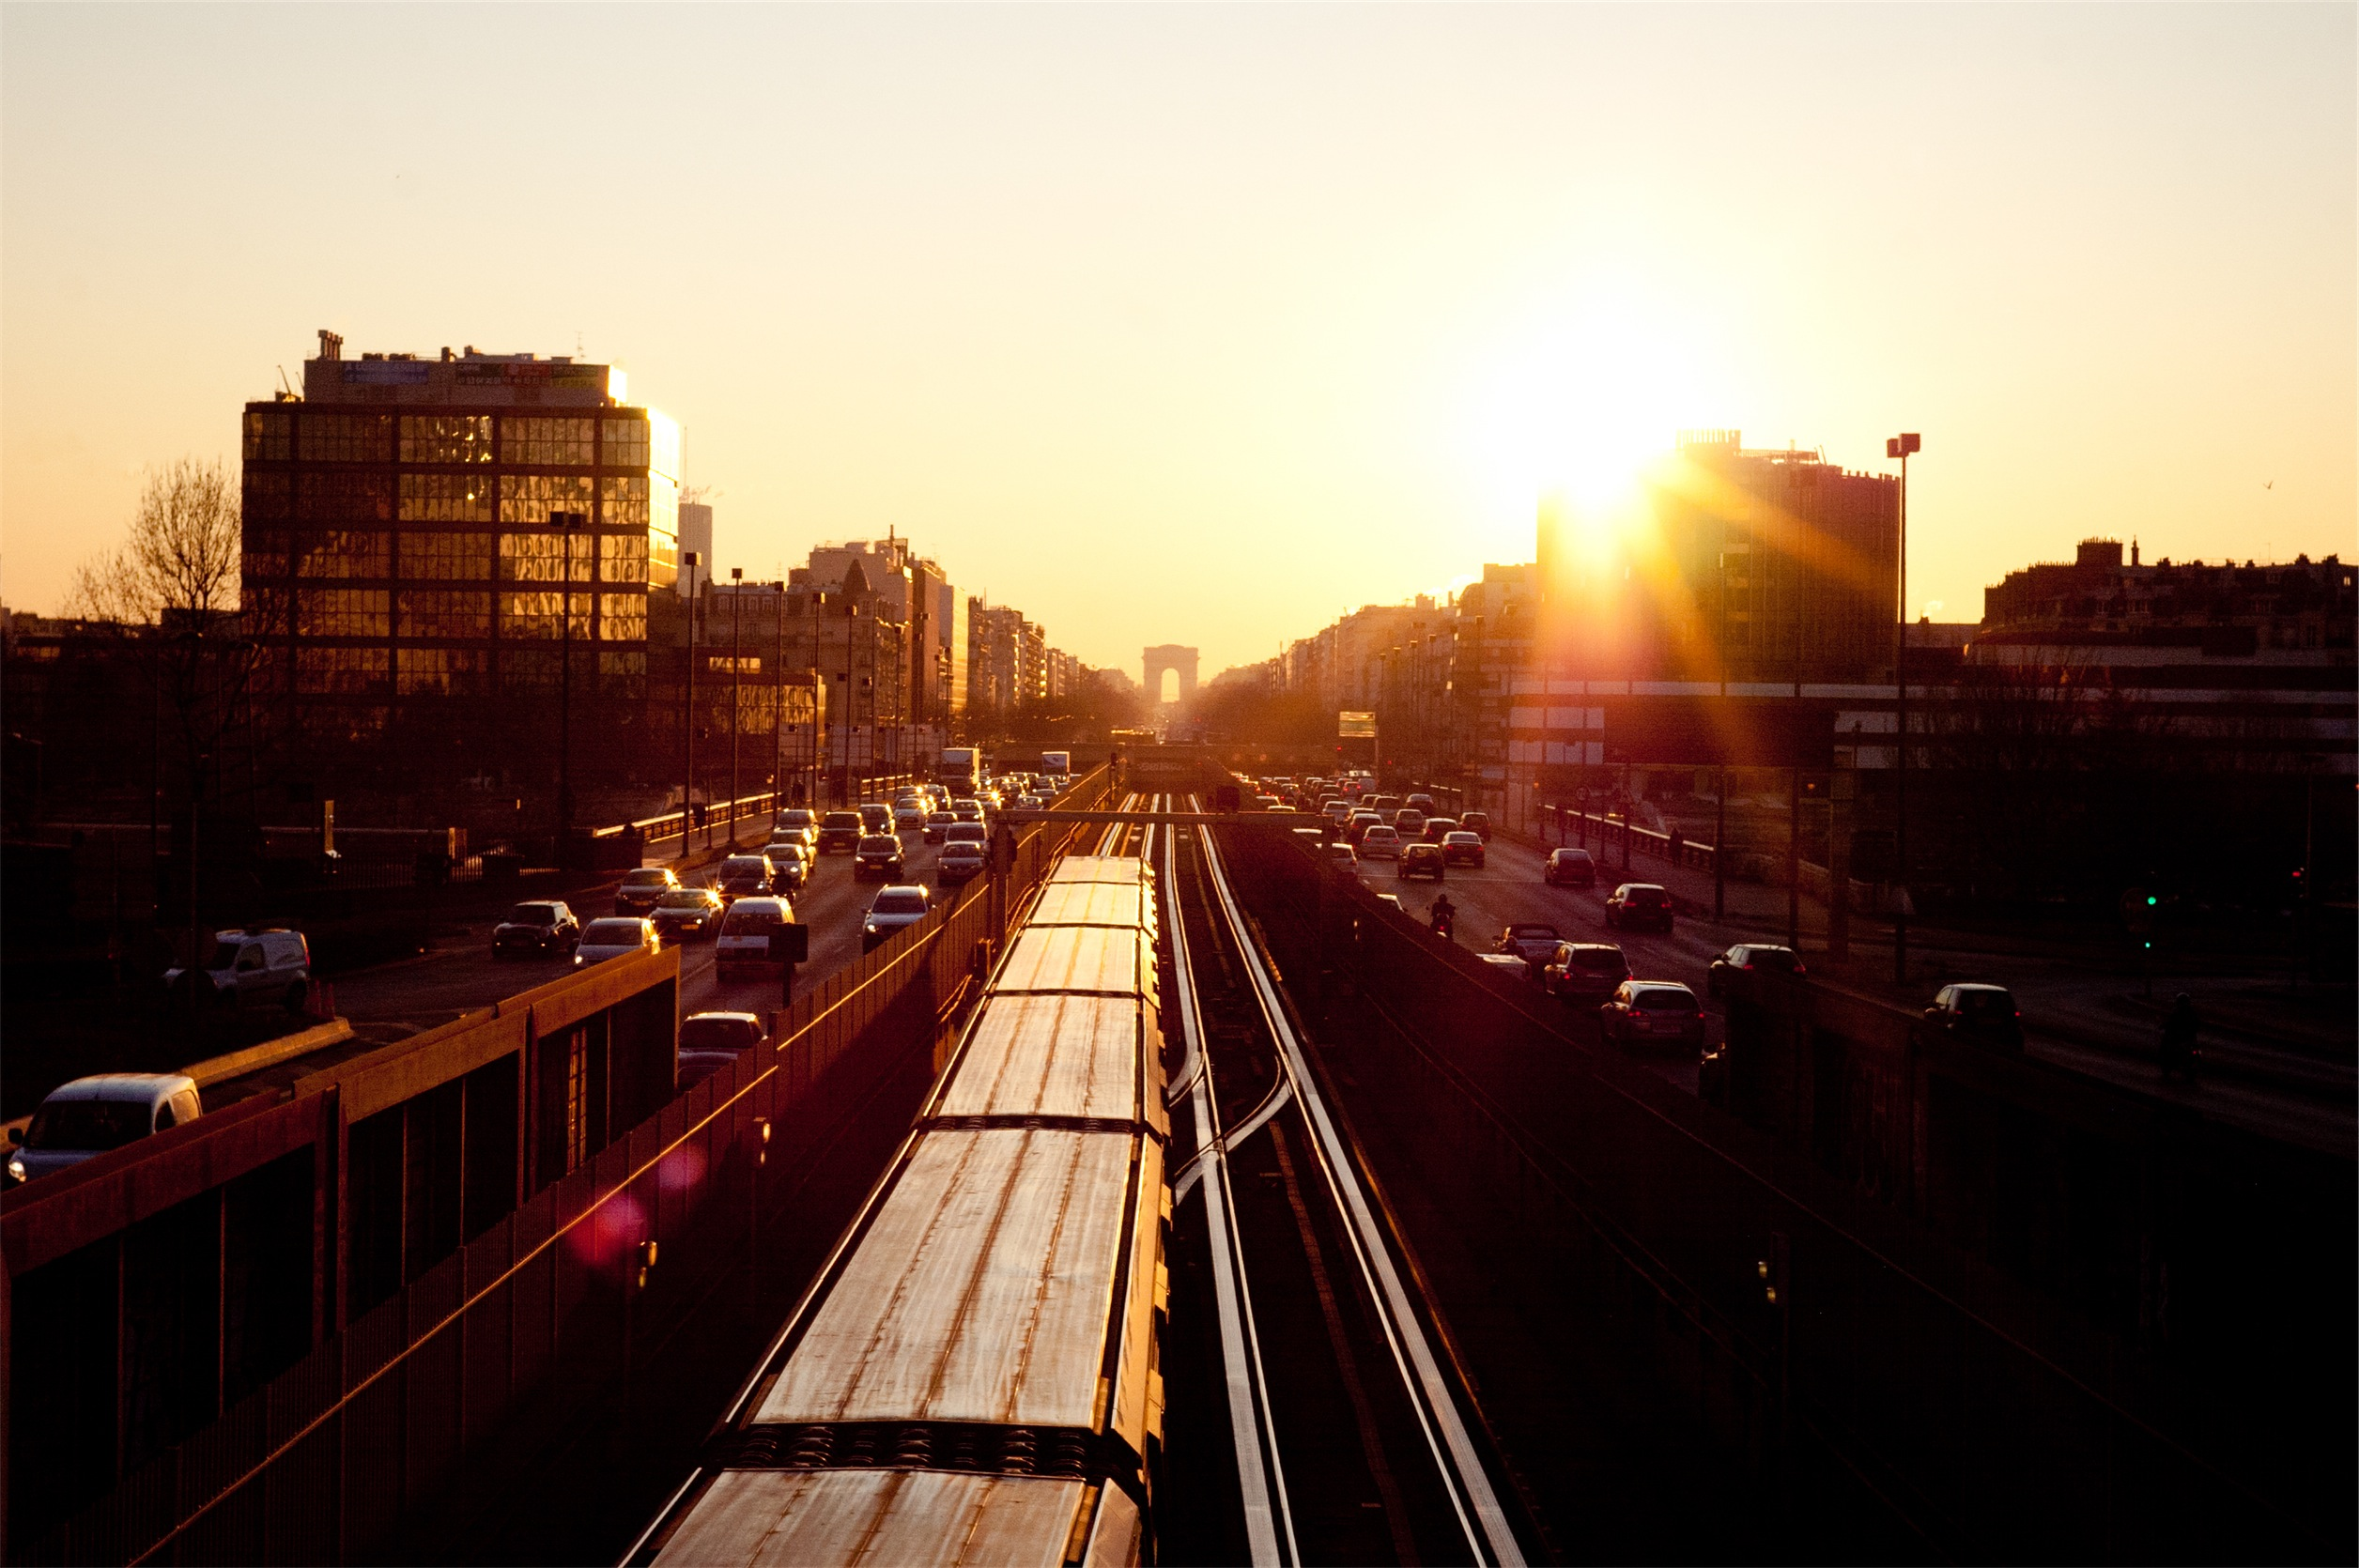 boss-fight-stock-images-photos-free-sunrise-train-cars-london